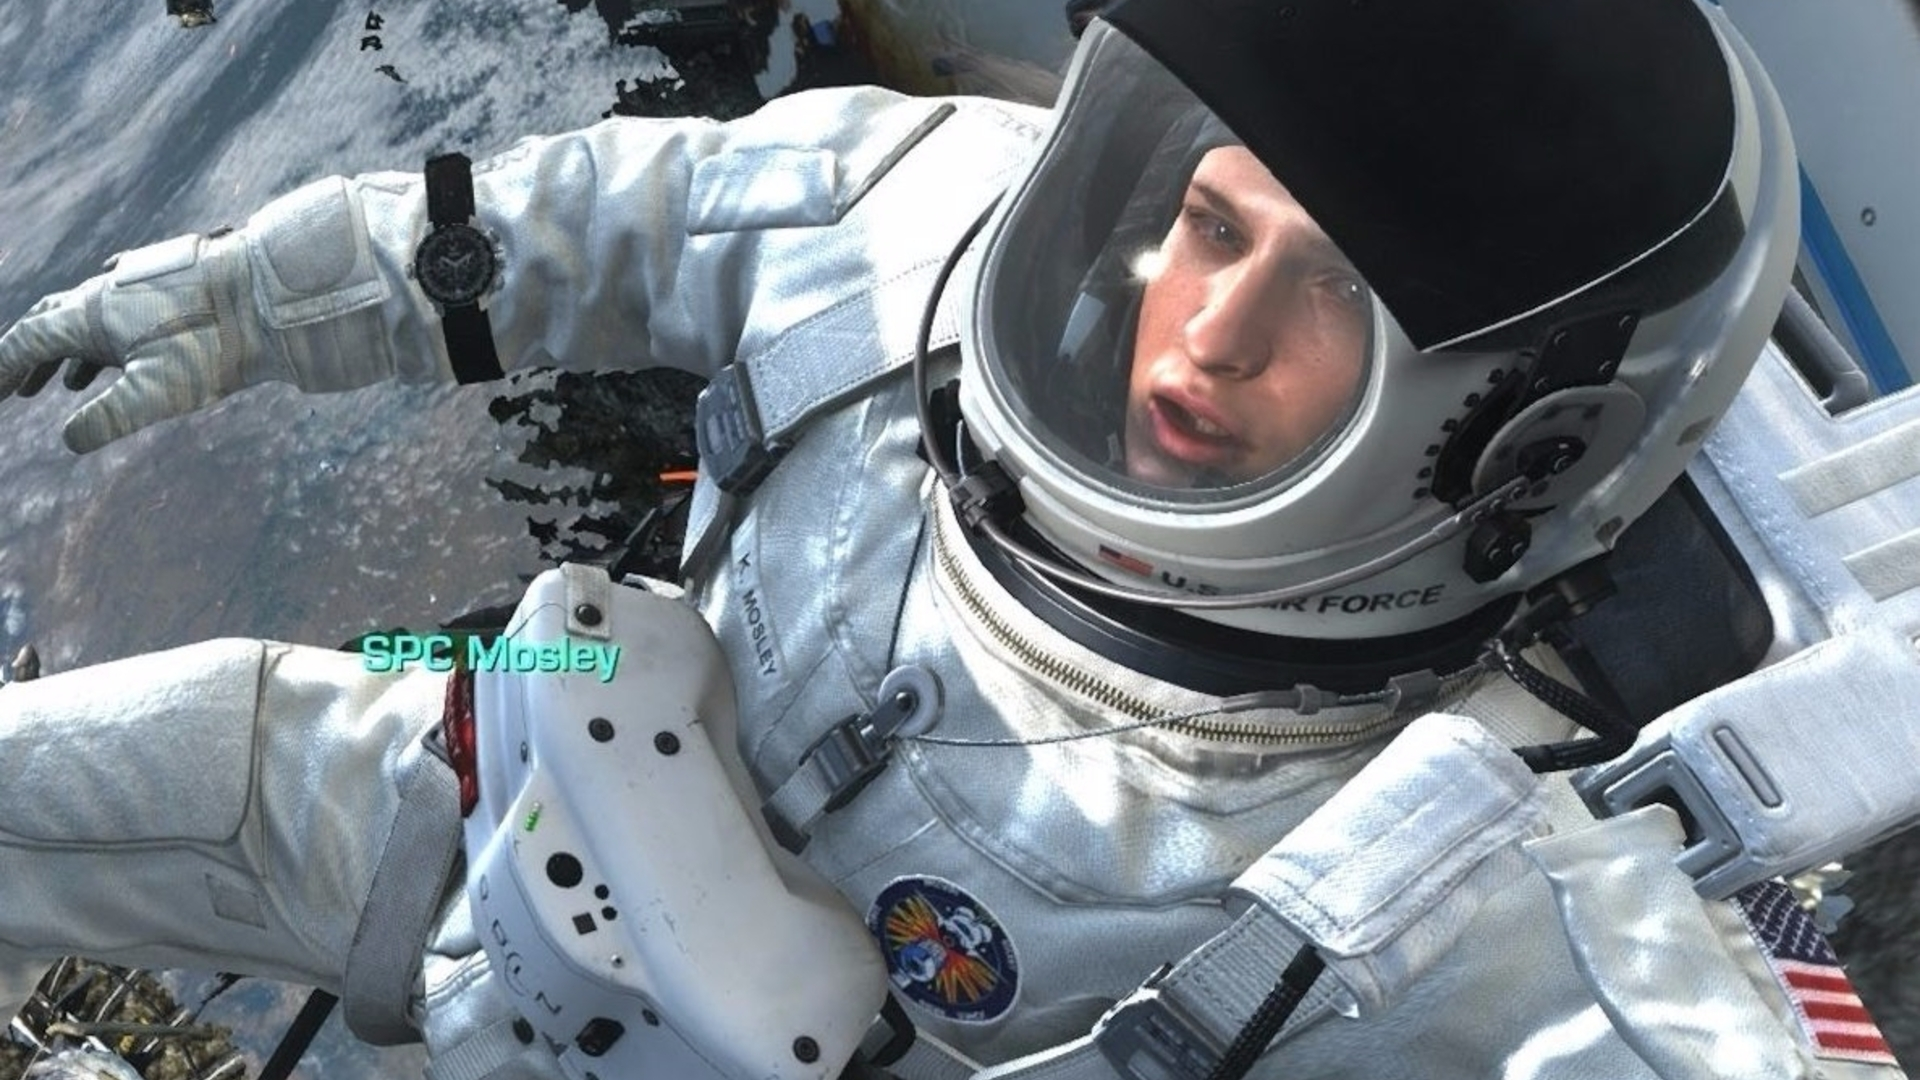 This year's Call of Duty is set in space - report